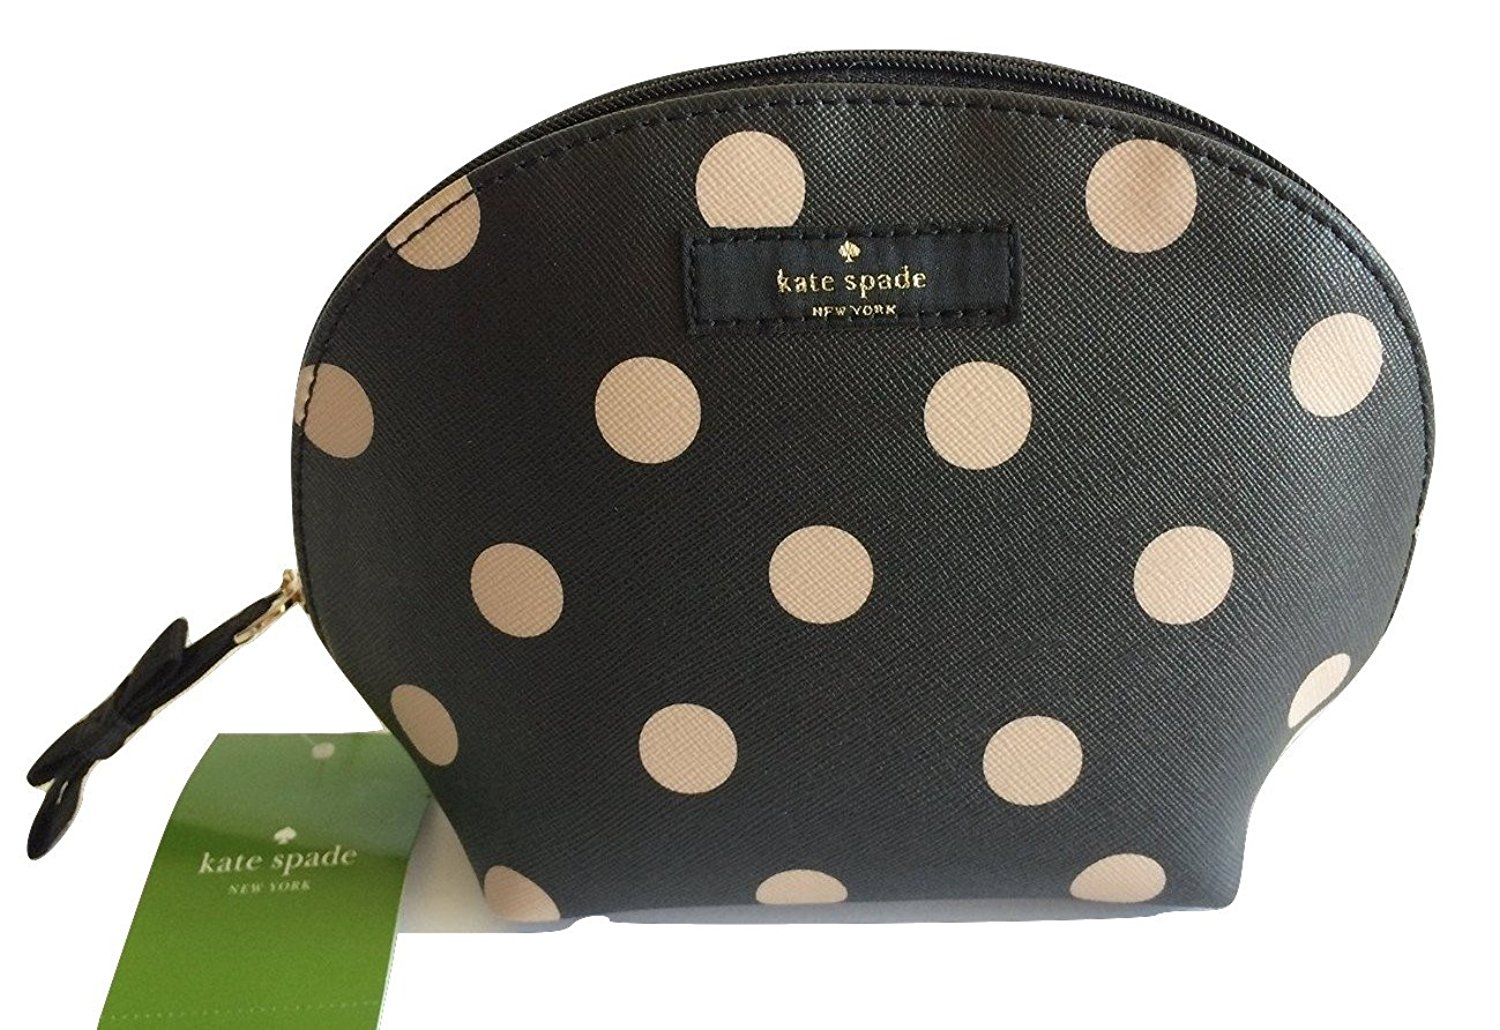 195a318794aa Get Quotations · Kate Spade Keri Brightwater Drive Cosmetic Bag  Black Dcobge WLRU2244